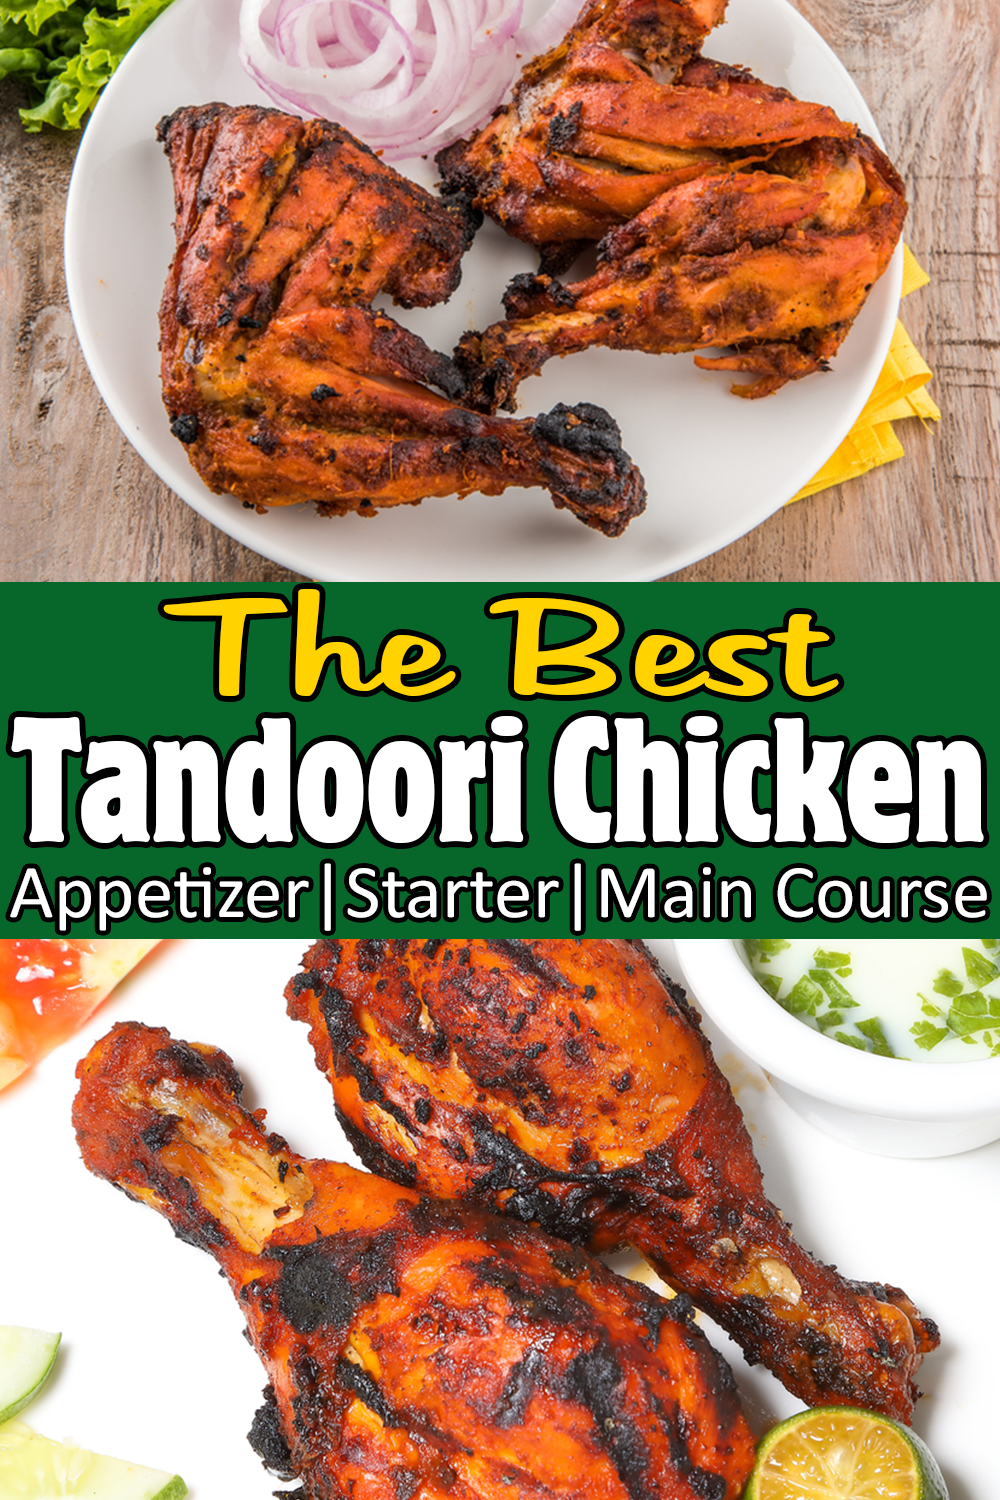 Best Tandoori Chicken #tandoorichicken